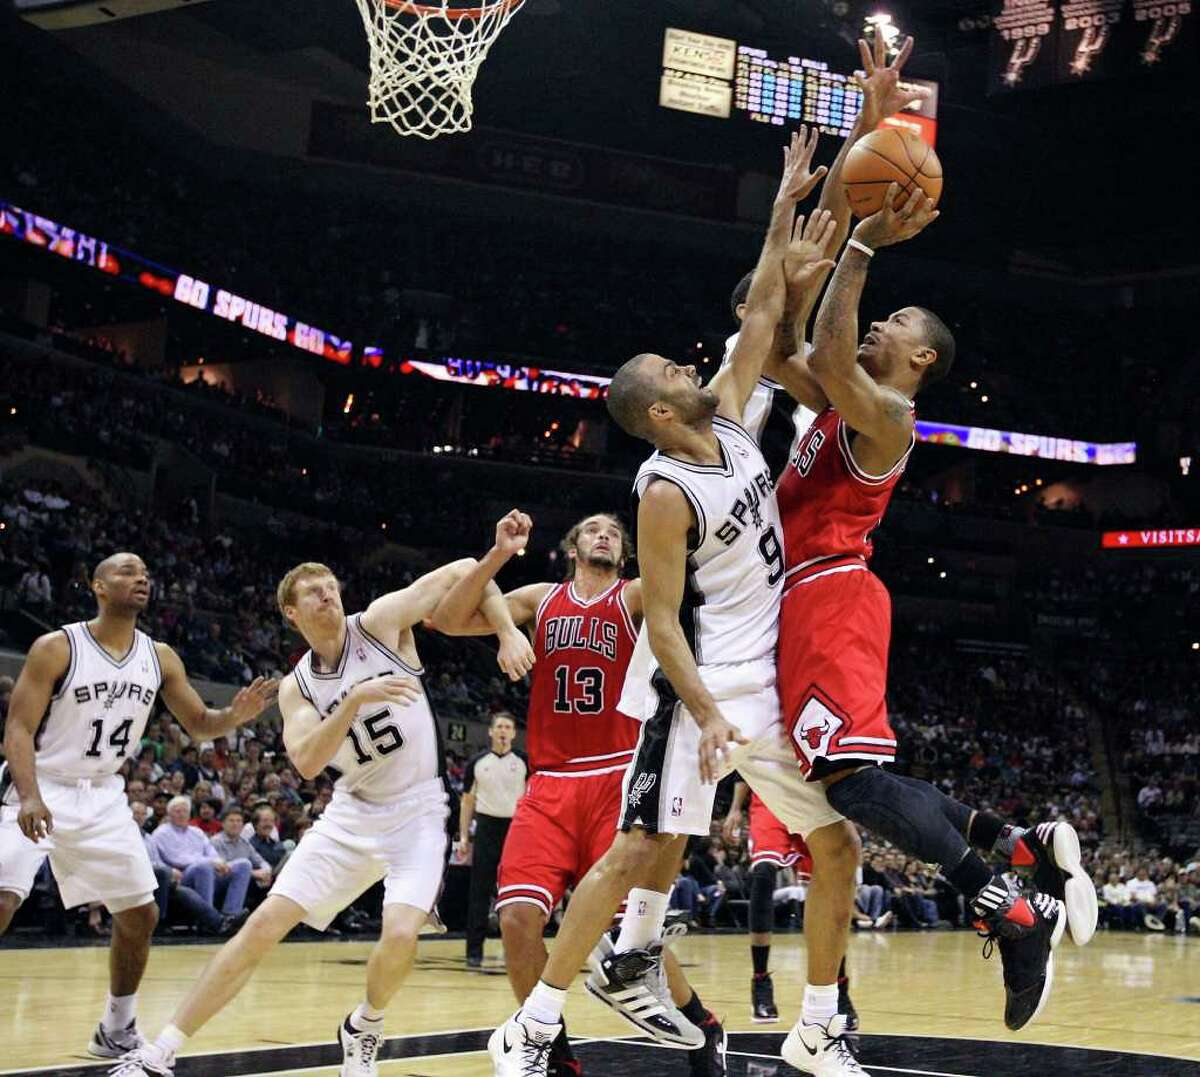 Chicago Bulls' Derrick Rose shoots over San Antonio Spurs' Tony Parker during first half action Wednesday Feb. 29, 2012 at the AT&T Center.